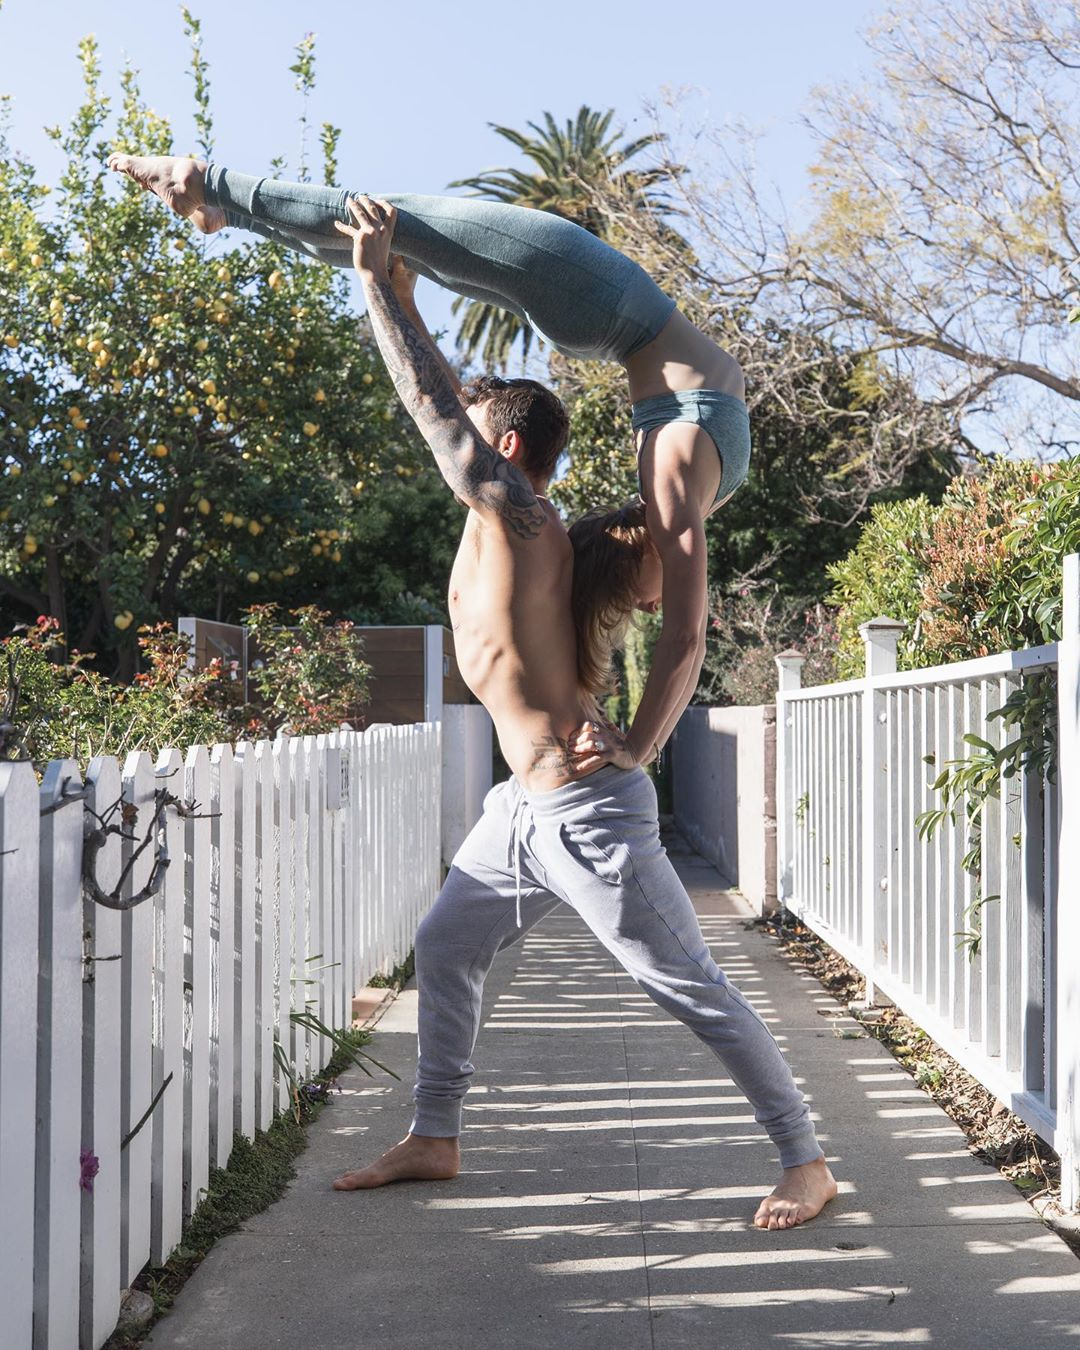 Surround yourself with positivity and those who lift you up - Calvin Corzine Yoga